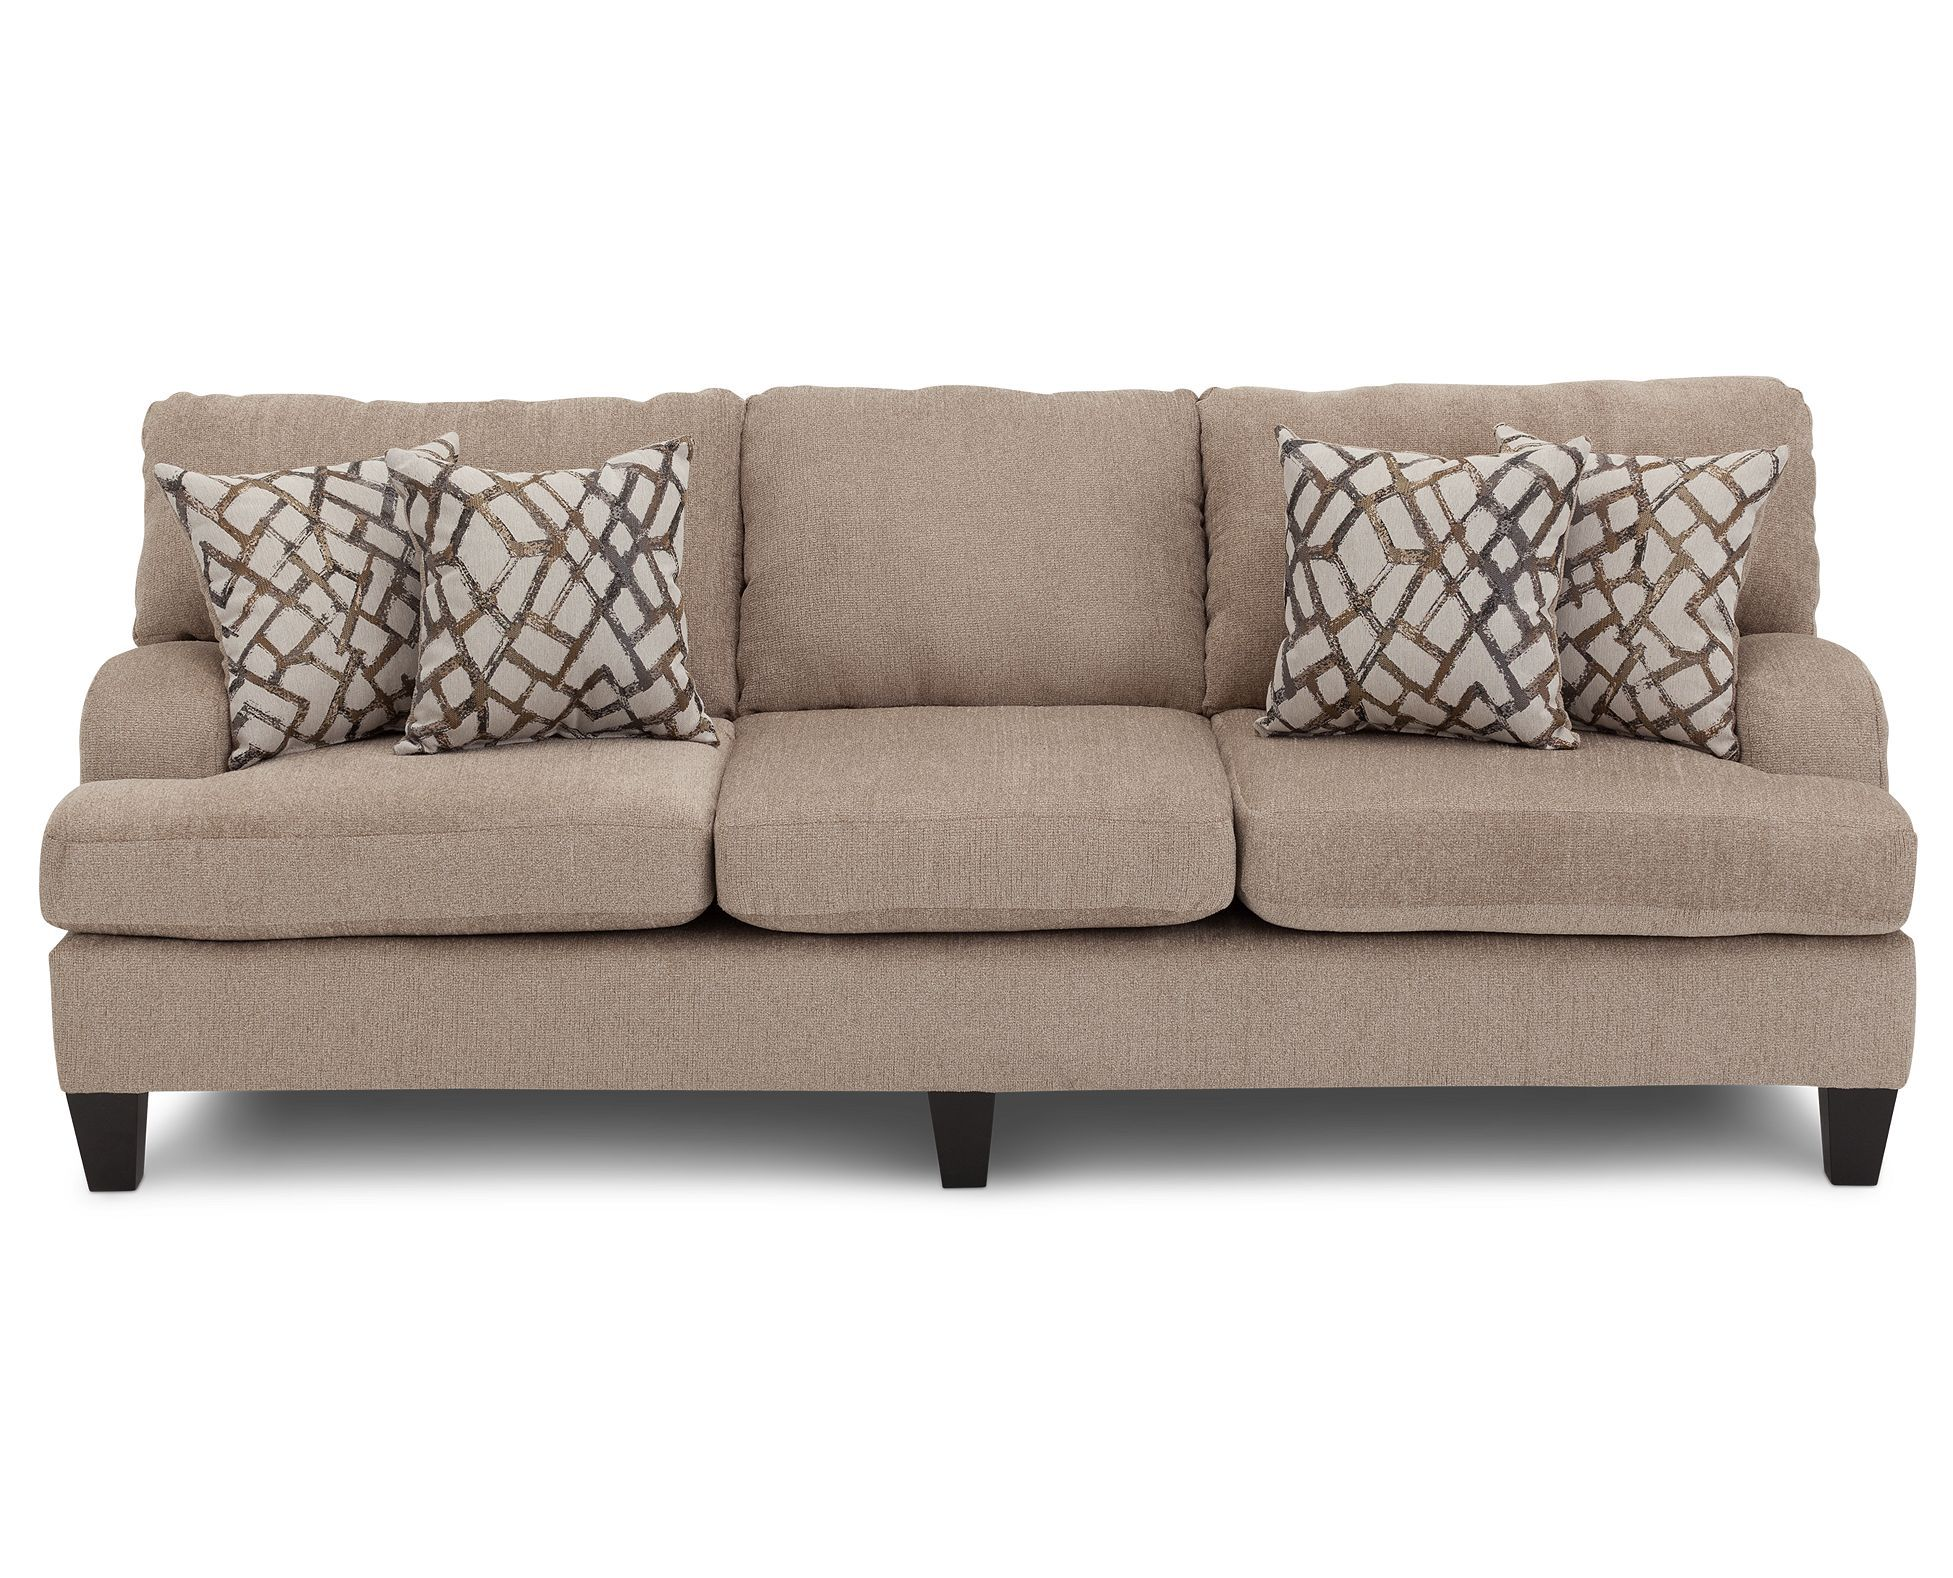 Aries Ii Sofa Is Oversized For Casual And Contemporary Comfort In